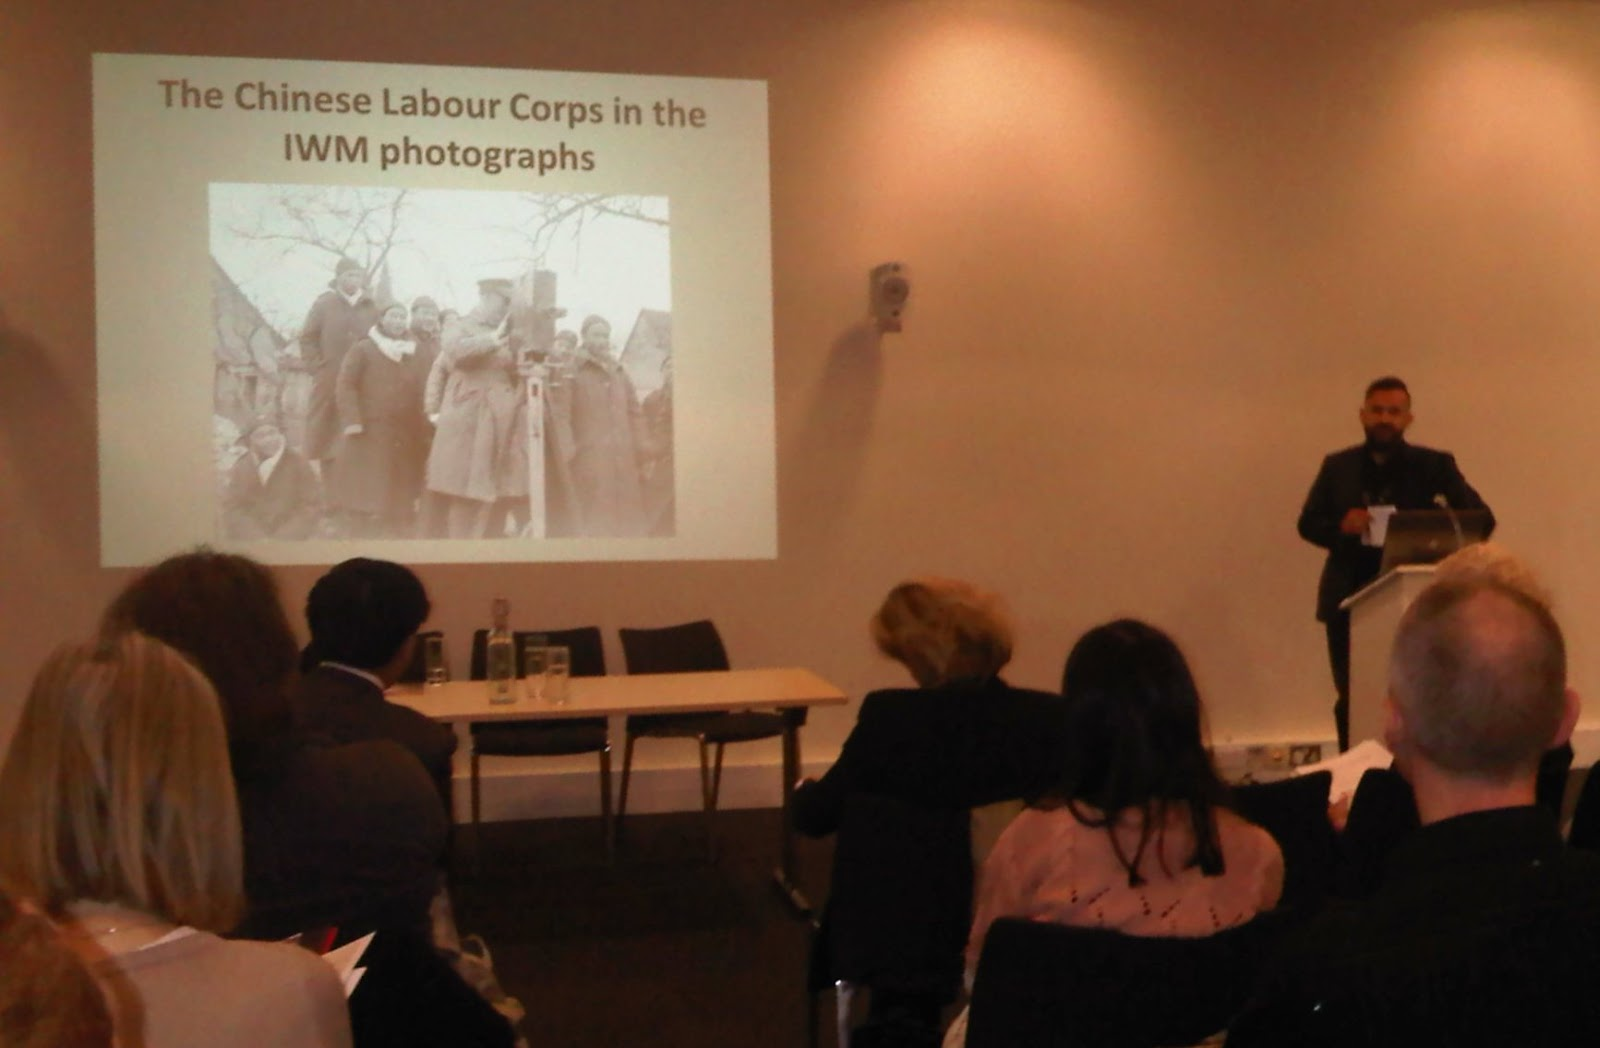 Mauriuz Gasior (Imperial War Museum) gave an introduction to the IWM's  photographic archives, both official and unofficial, relating to the CLC –  prompting ...